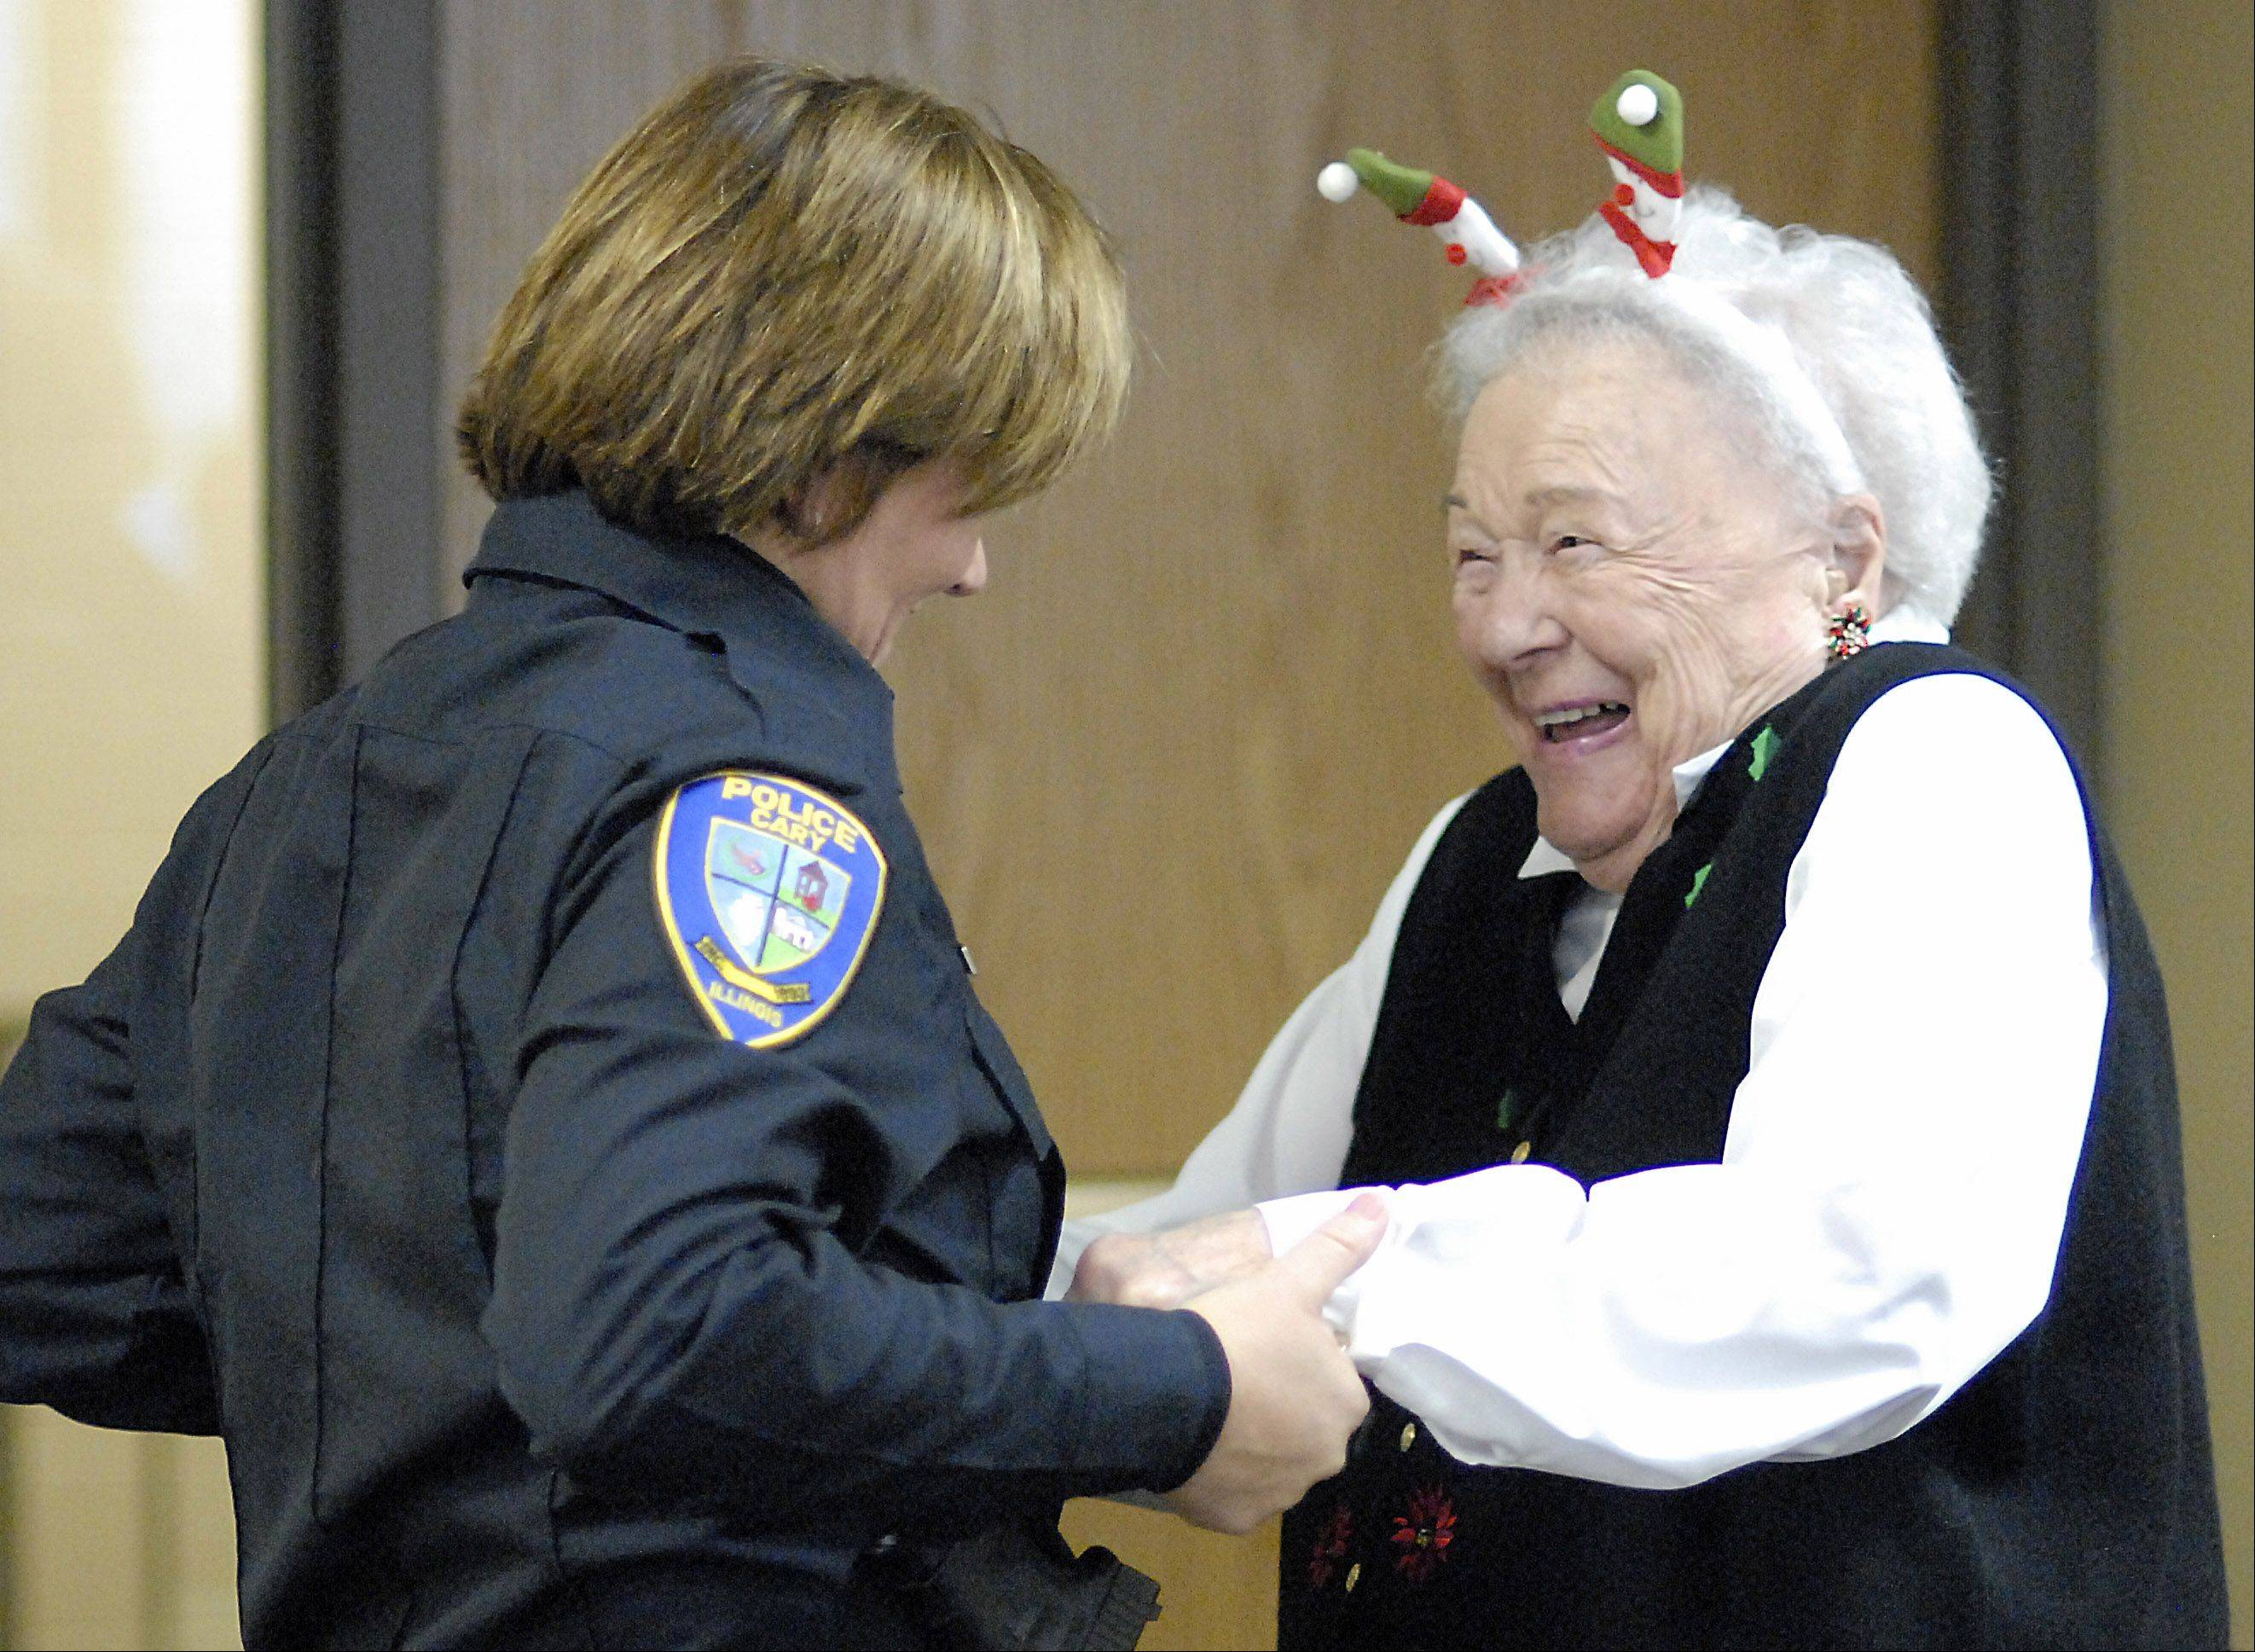 "Edie Backman of Cary is greeted by Cary patrol officer and Elderly Service Officer Kathy Eiring during the Kraus Senior Center's Christmas party on Dec. 14. The two have been friends for the past few years, and Eiring continues to visit Backman who has recently moved from her home to an assisted living facility. ""Whenever she shows up at the senior center, I'm real happy,"" says Backman, ""(She's) a friend to everybody, a good officer."""